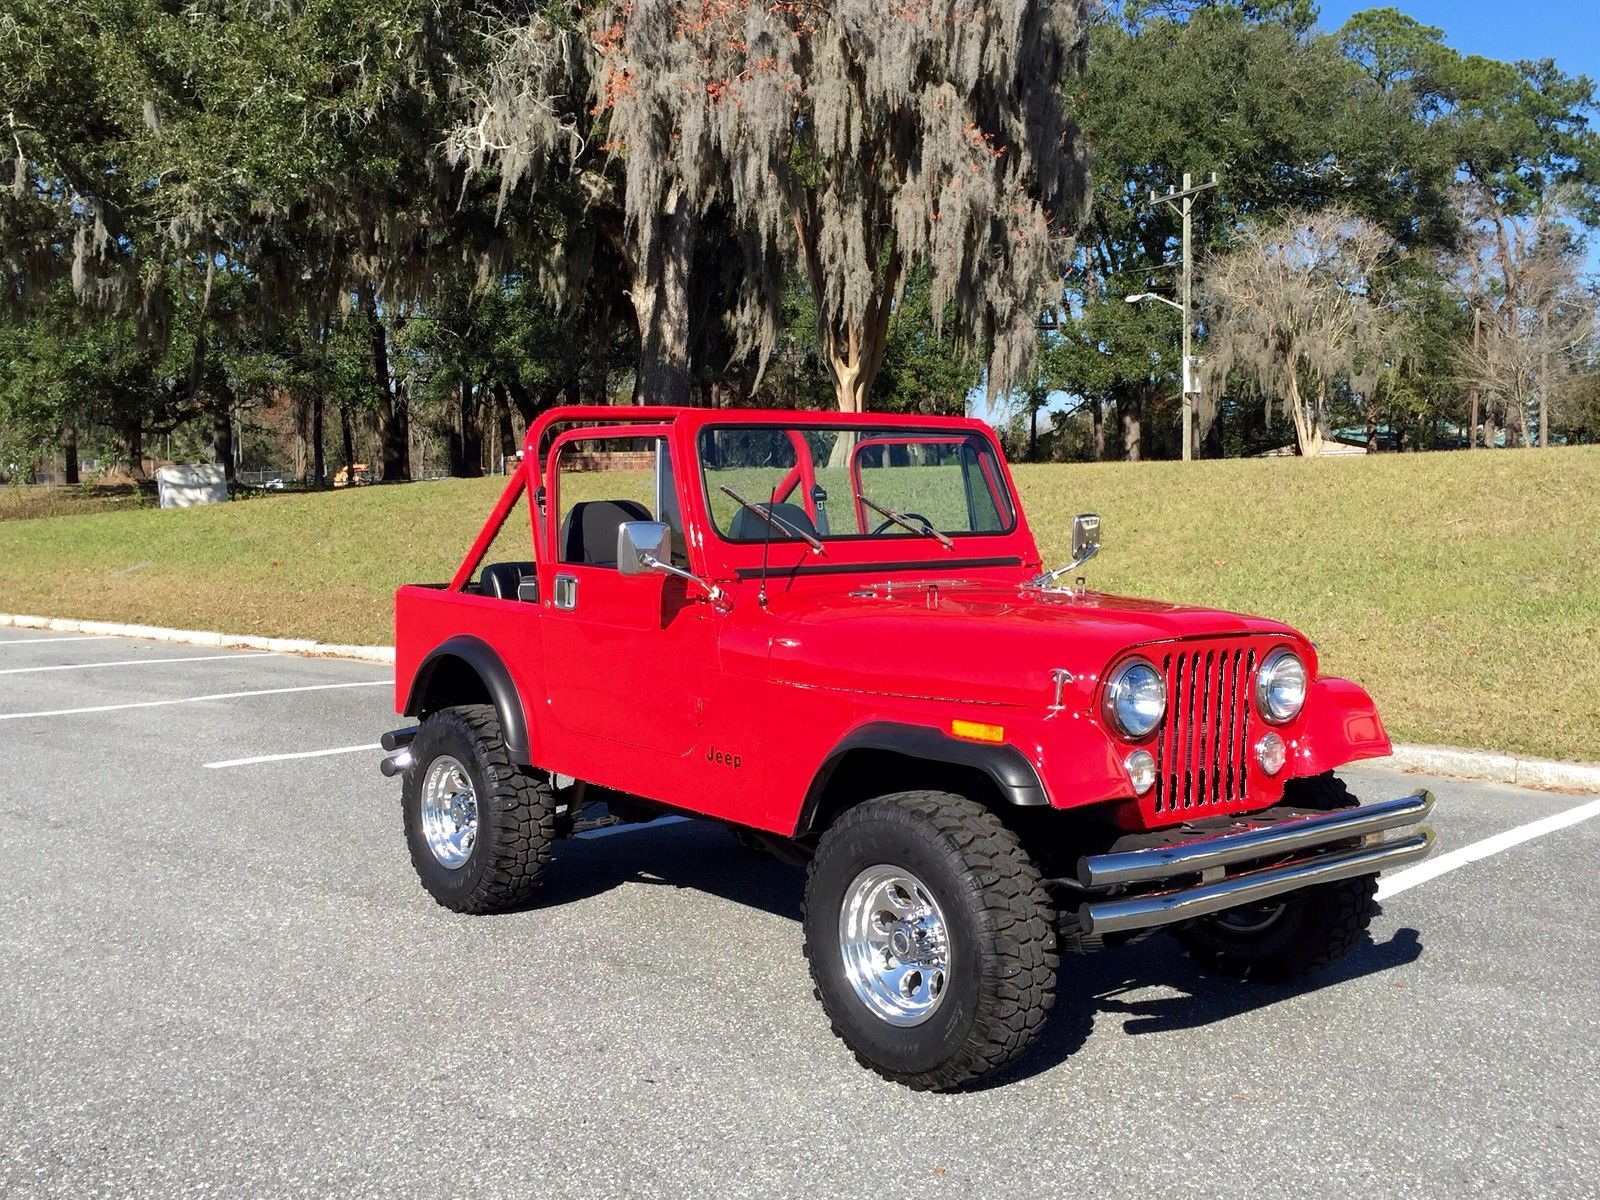 Restored 1986 Cj7  Red Hot Chevy Conversion  Automatic  Rust Free  Hardtop For Sale In